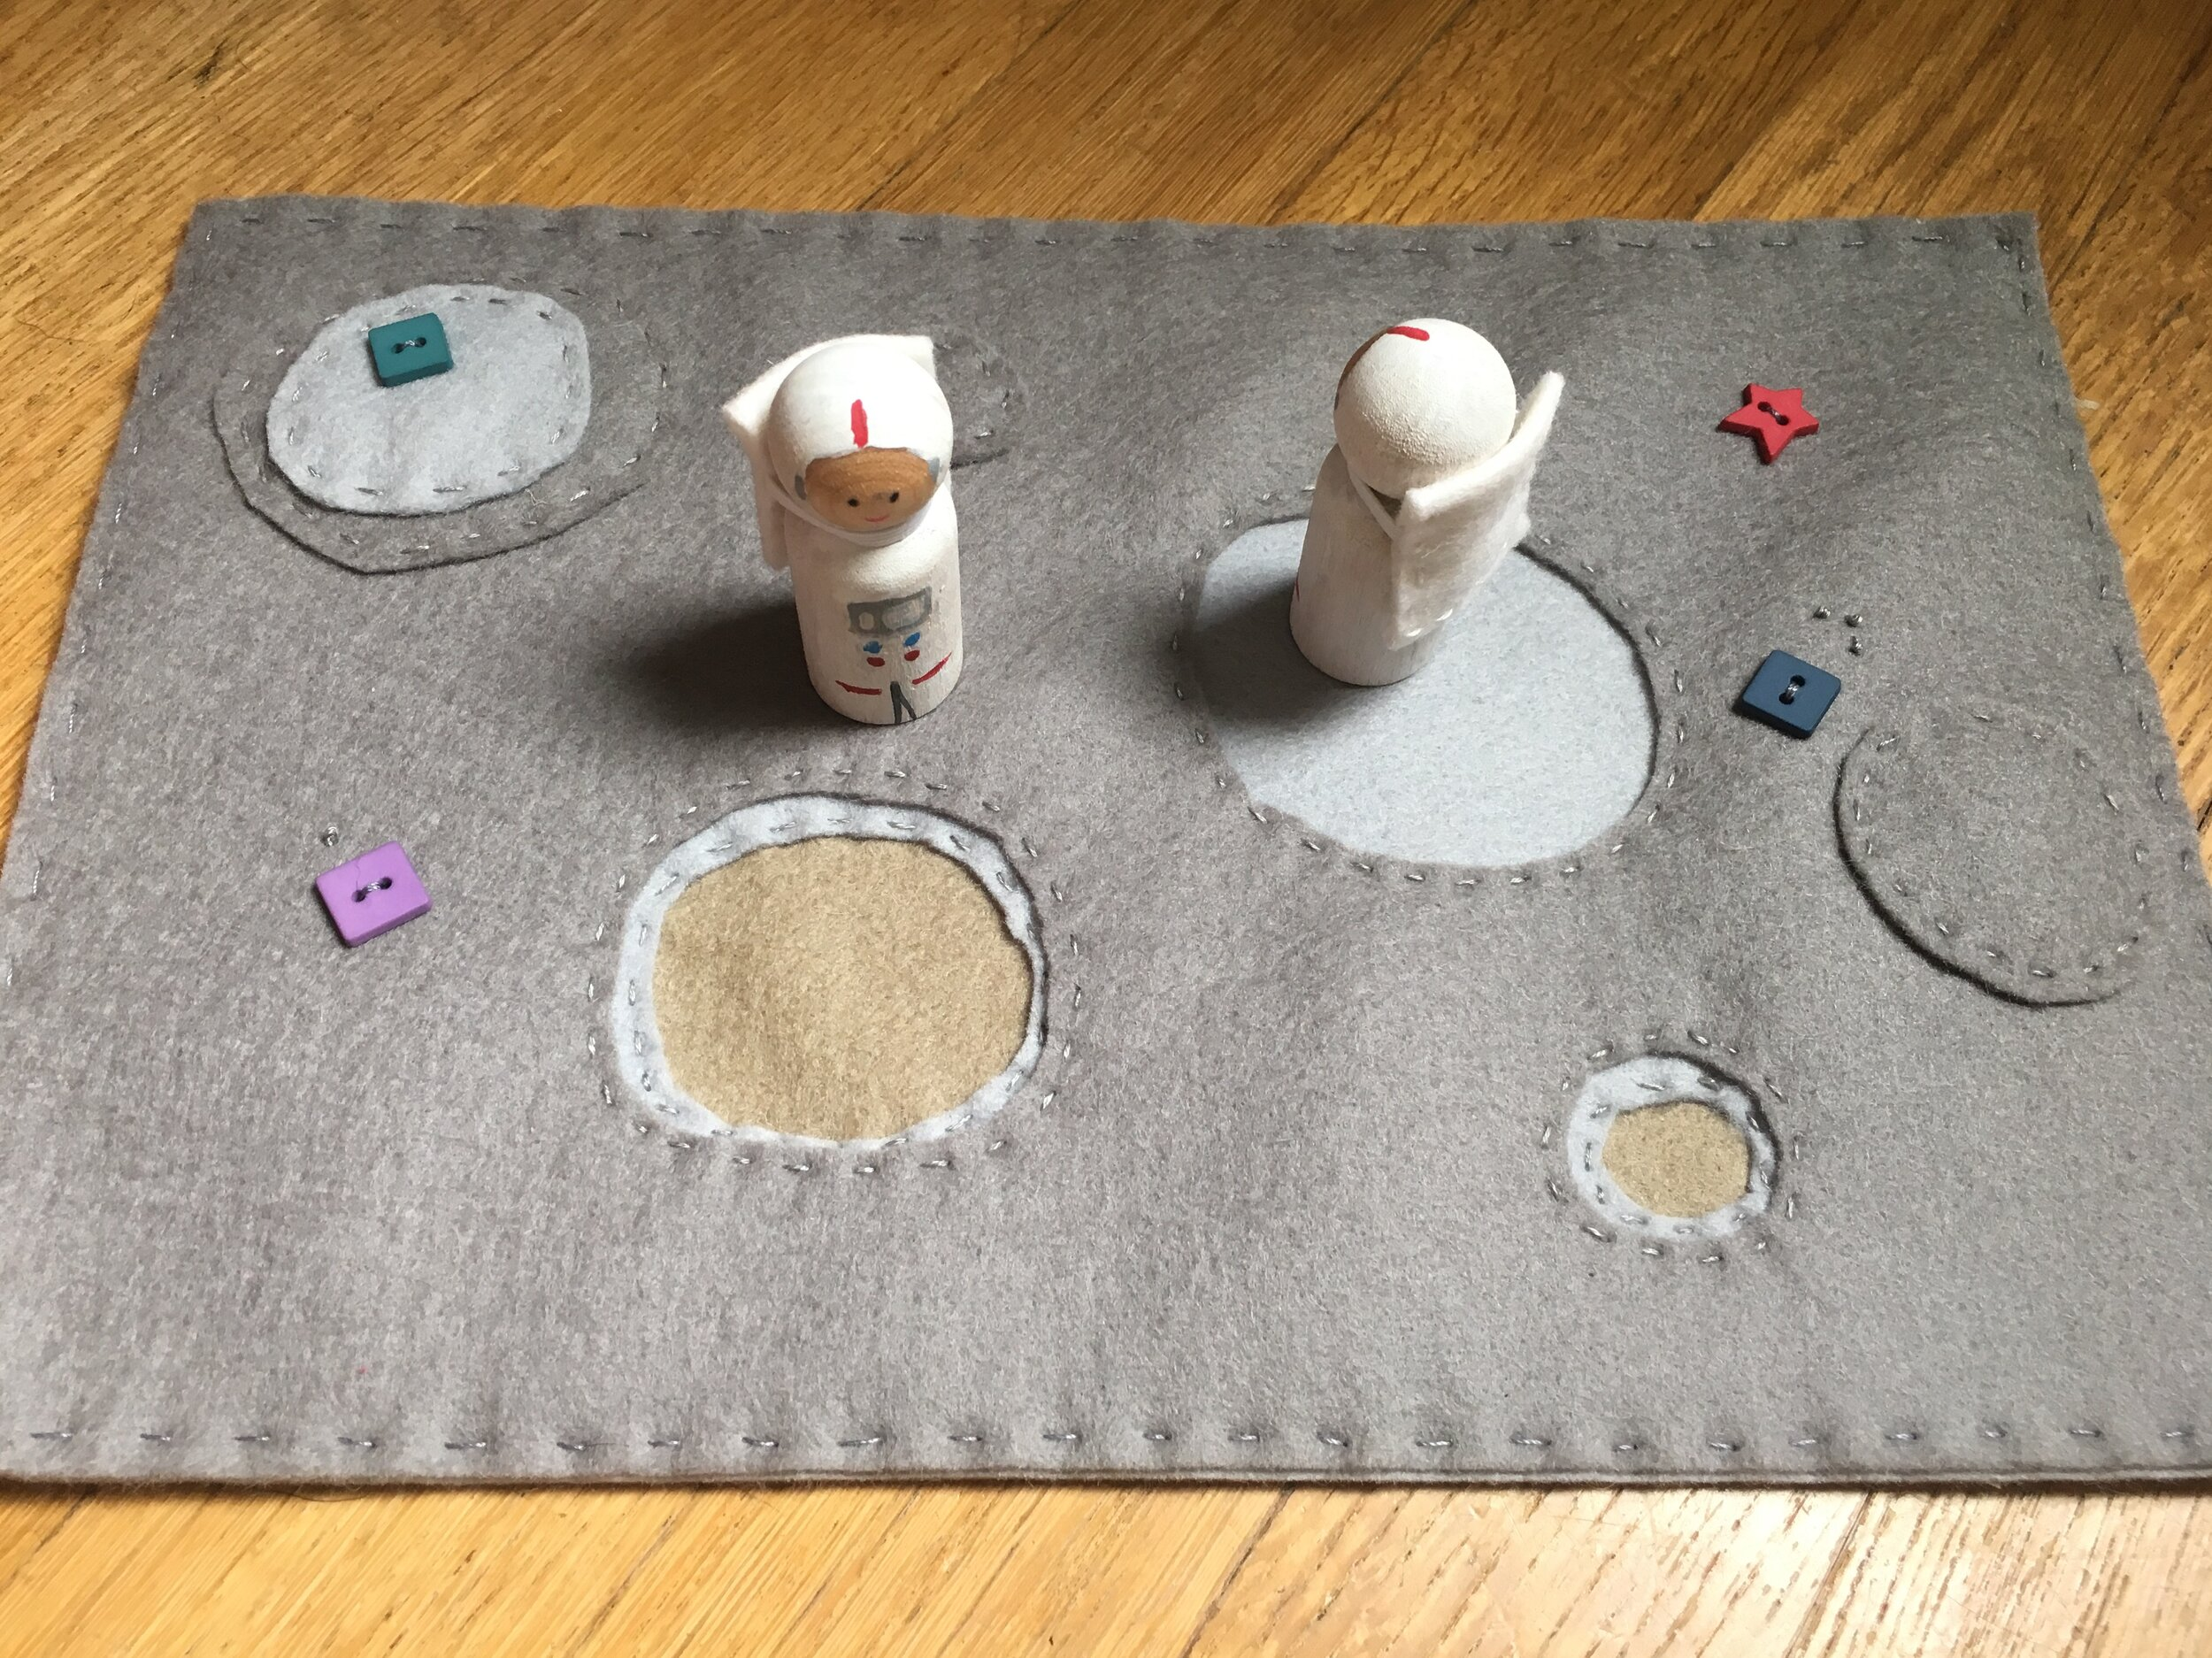 Felt lunar playscape with standard peg doll astronauts